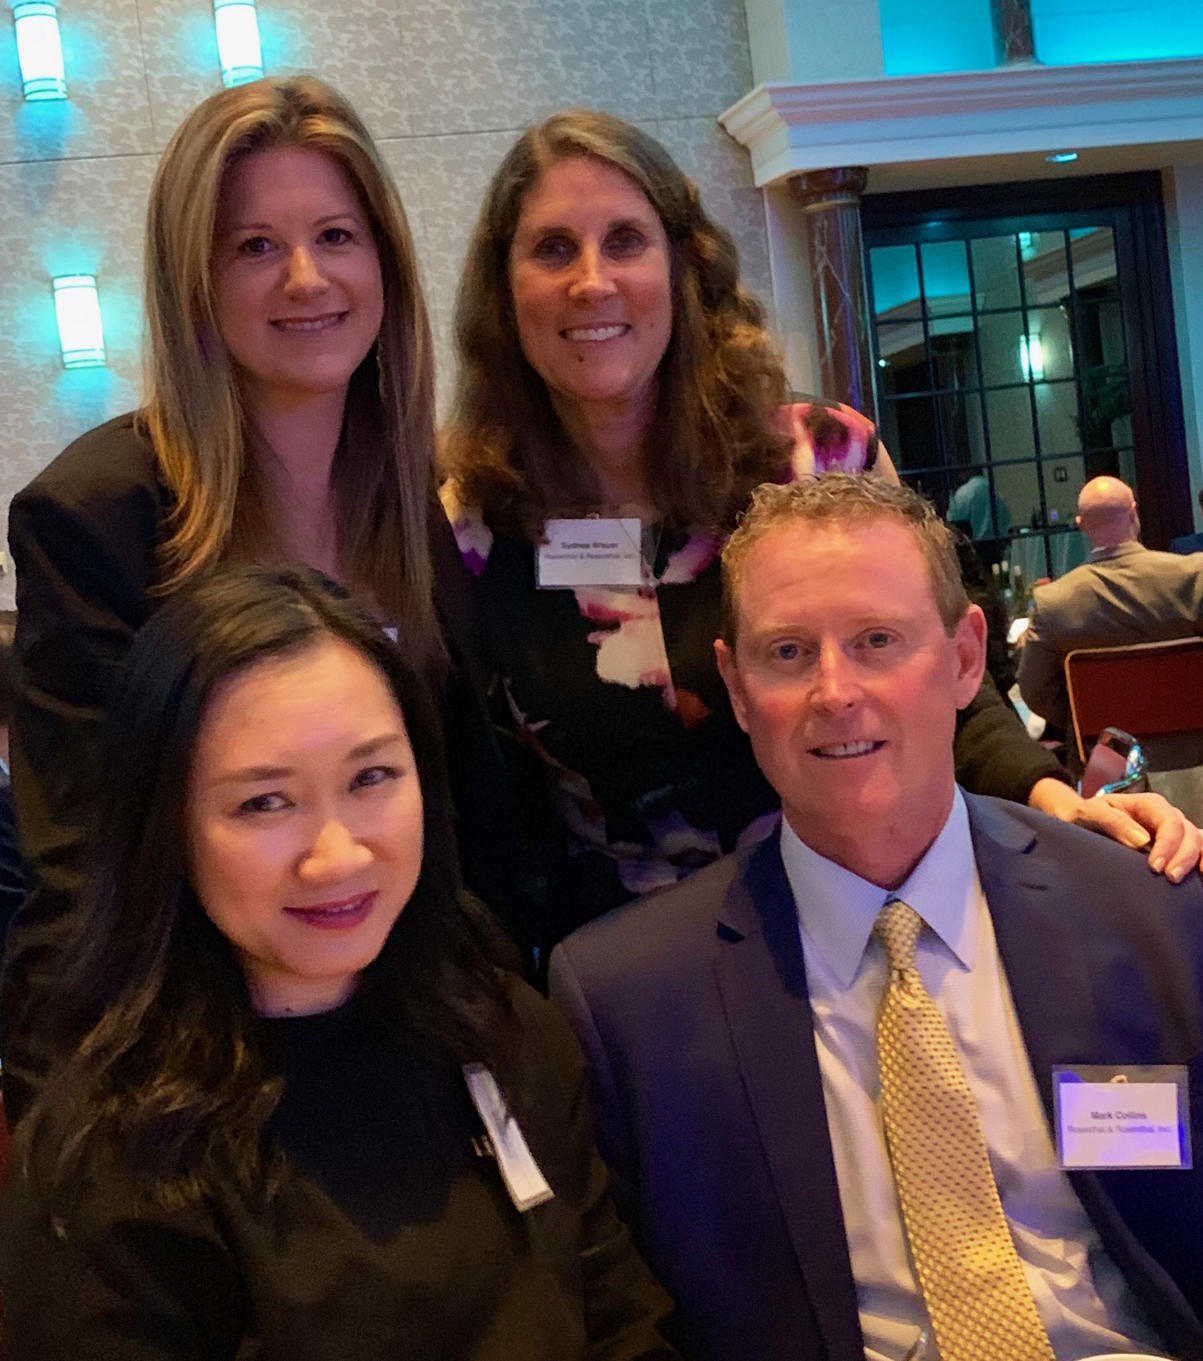 Cassie, Sydnee, Ying, and Mark at the City of Hope's International Home Furnishings Industry 2019 Spirit of Life Award Dinner on Sunday April, 7th in Greensboro, NC. It was a great night supporting the honorees and this incredible organization which raised 3.6MM!